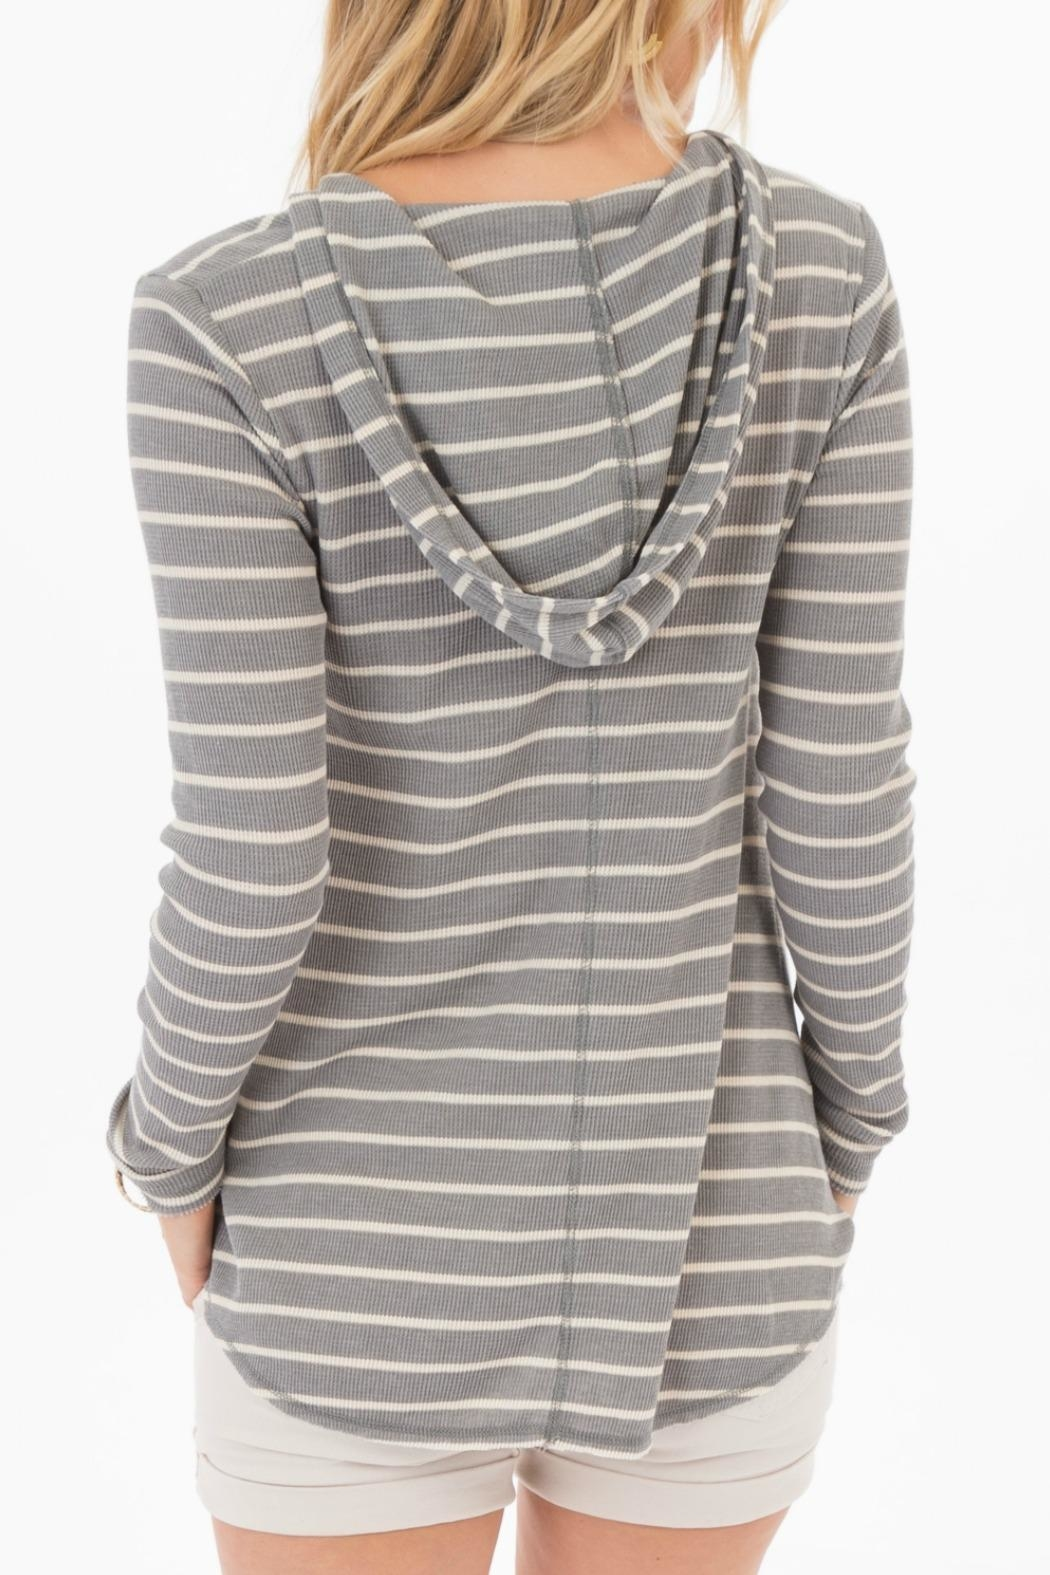 rag poets Everest Striped-Hooded Top - Front Full Image